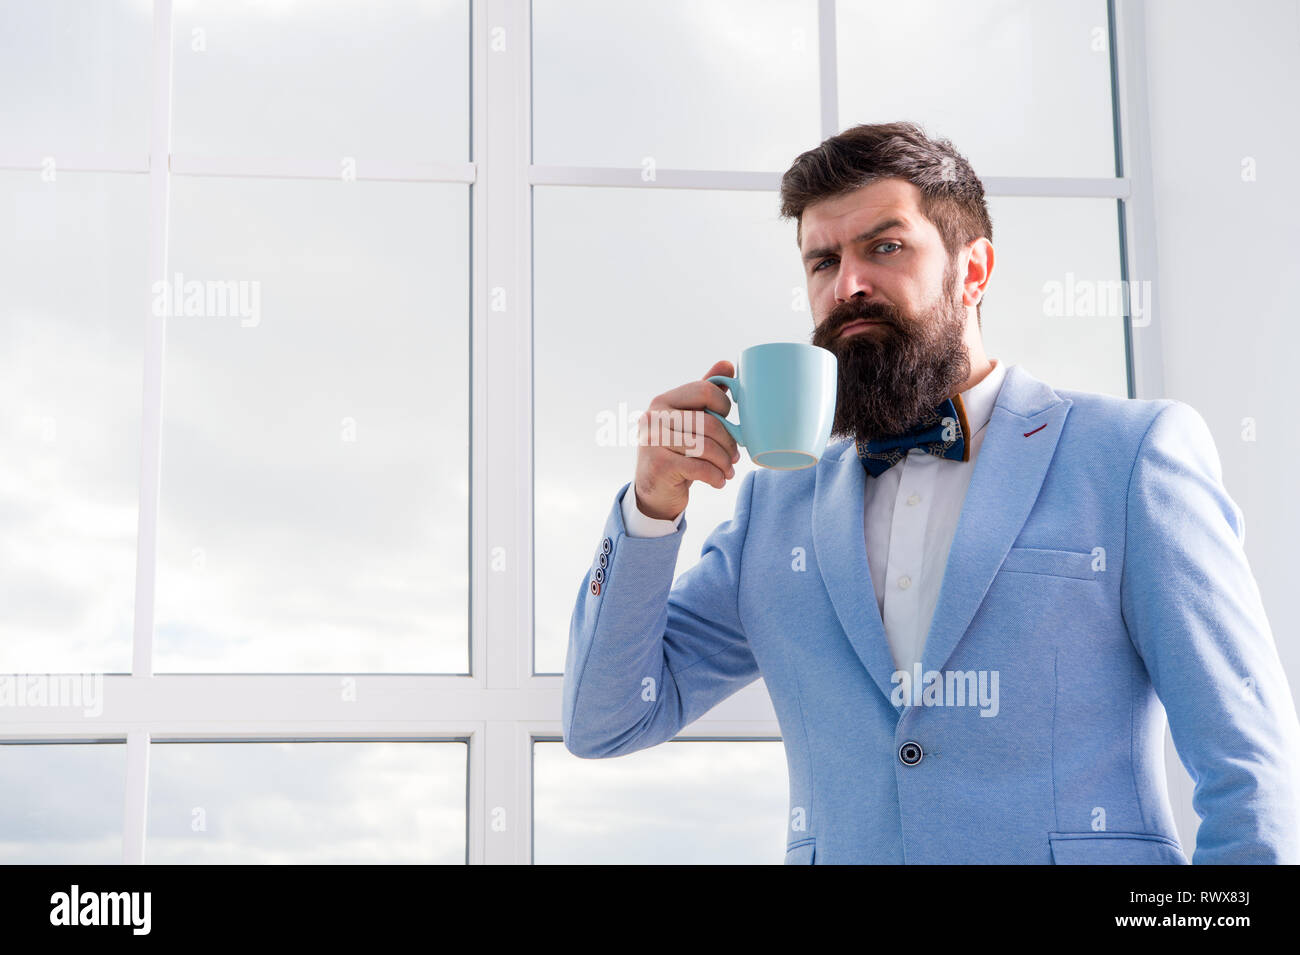 future opportunities. serious bearded man drink coffee. businessman in formal outfit. modern life. confident business man at window. future success. morning inspiration. copy space. Future is now. Stock Photo